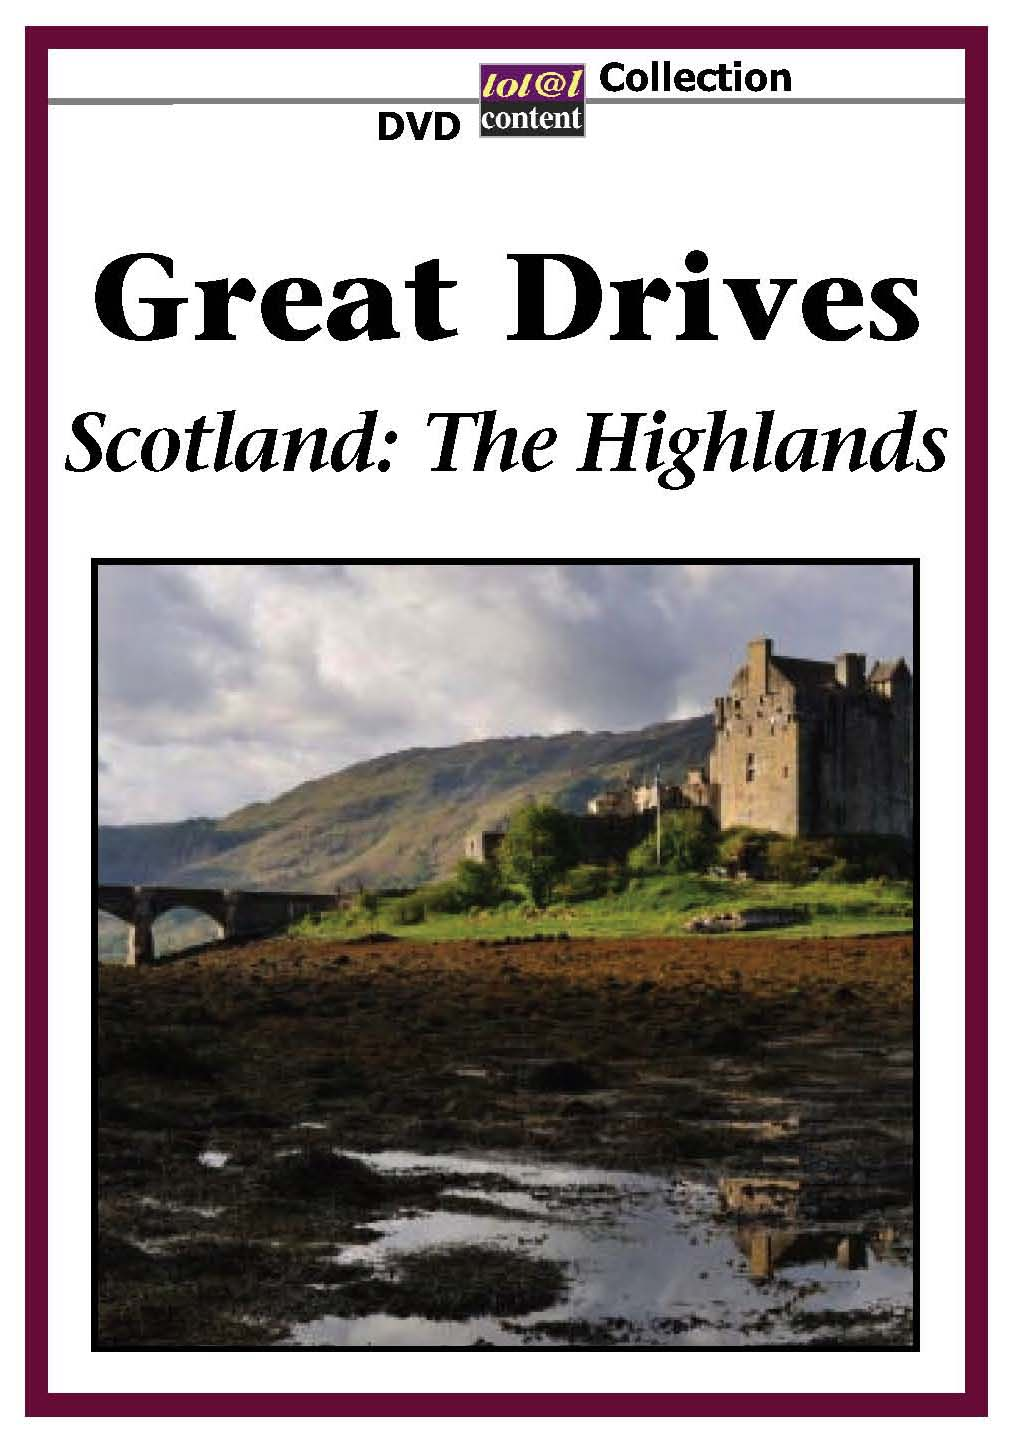 Great Drives: Scotland - The Highlands